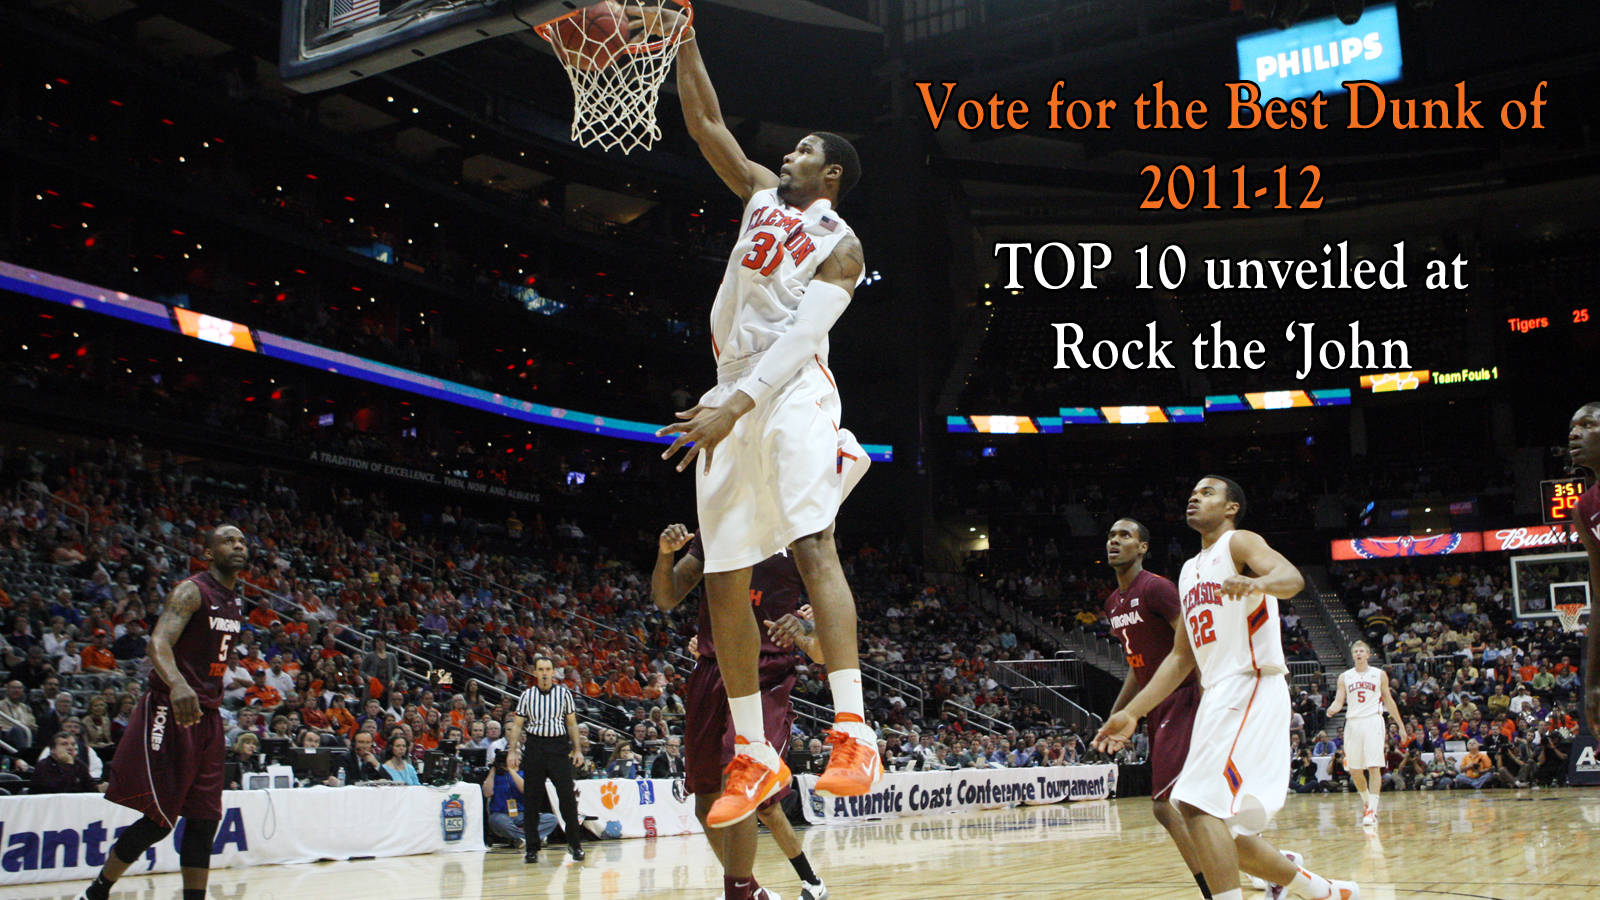 Rock the 'John: Vote for Top Dunks of 2011-12